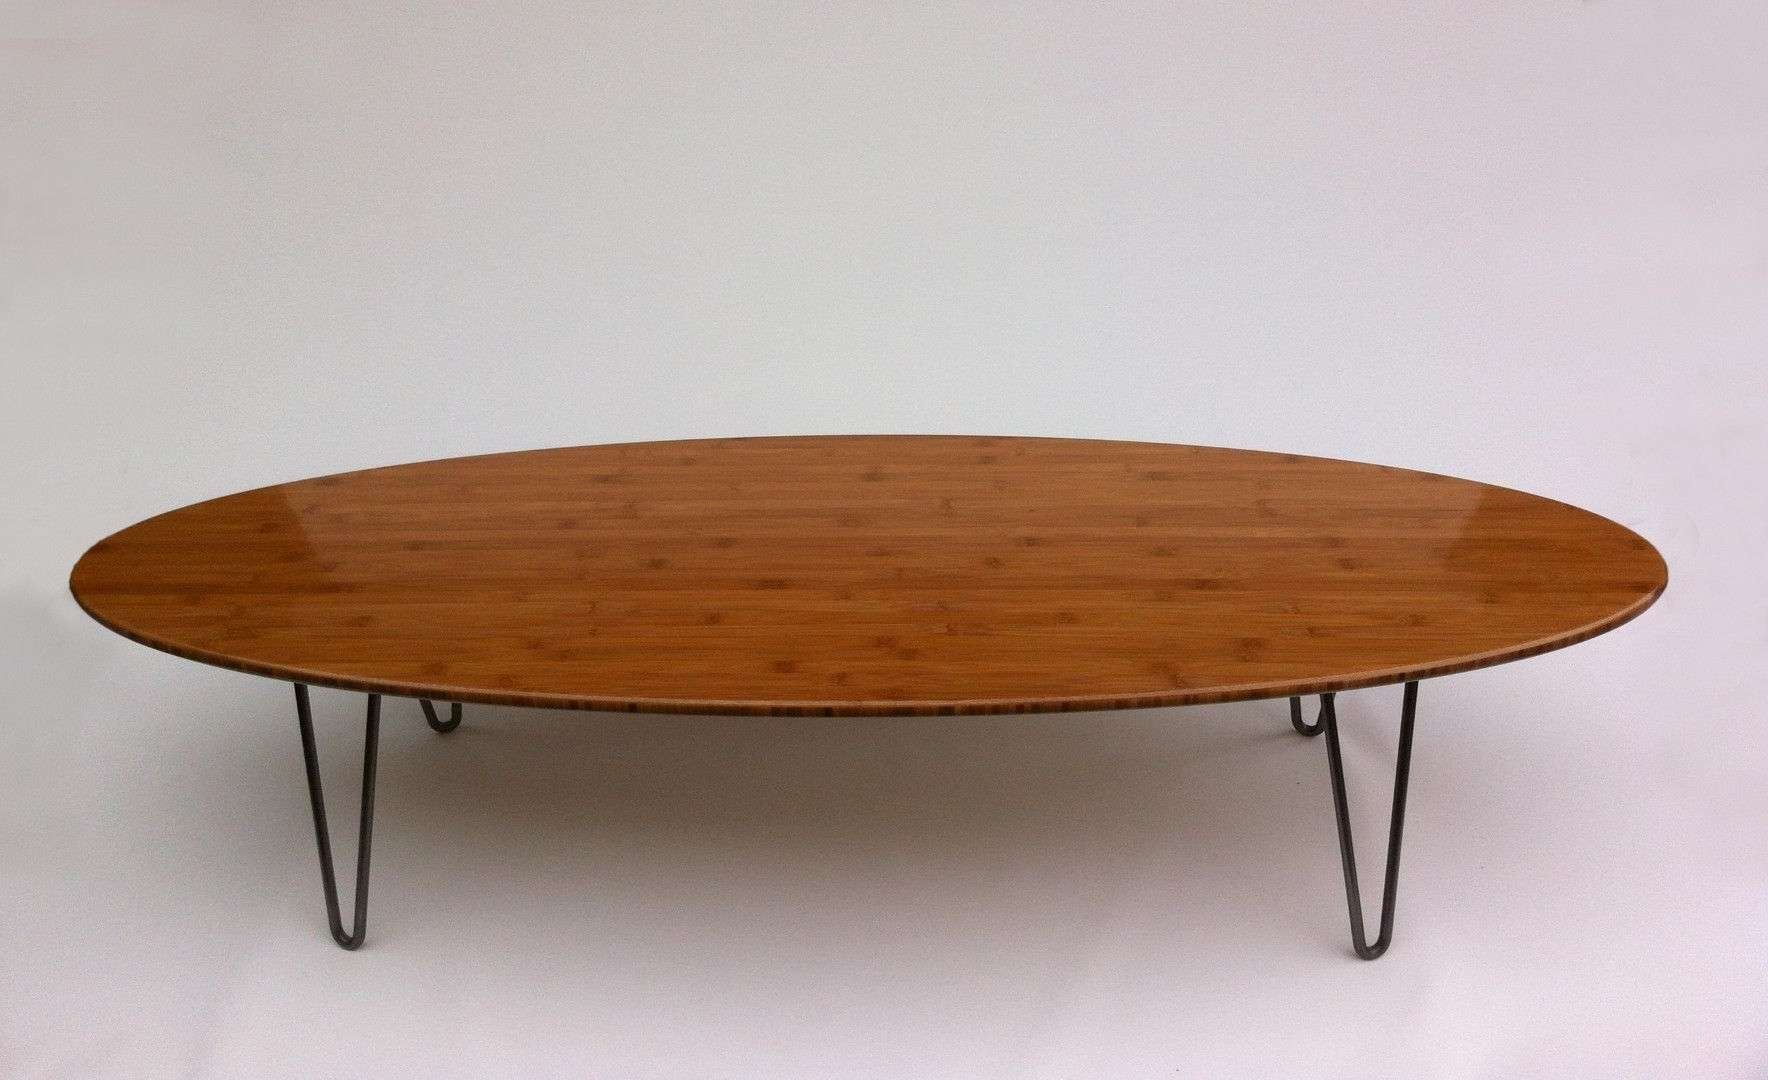 """Buy Custom 47"""" Surf Board Shaped Elliptical Mid Century Modern Within Favorite Oval Shaped Coffee Tables (View 3 of 20)"""